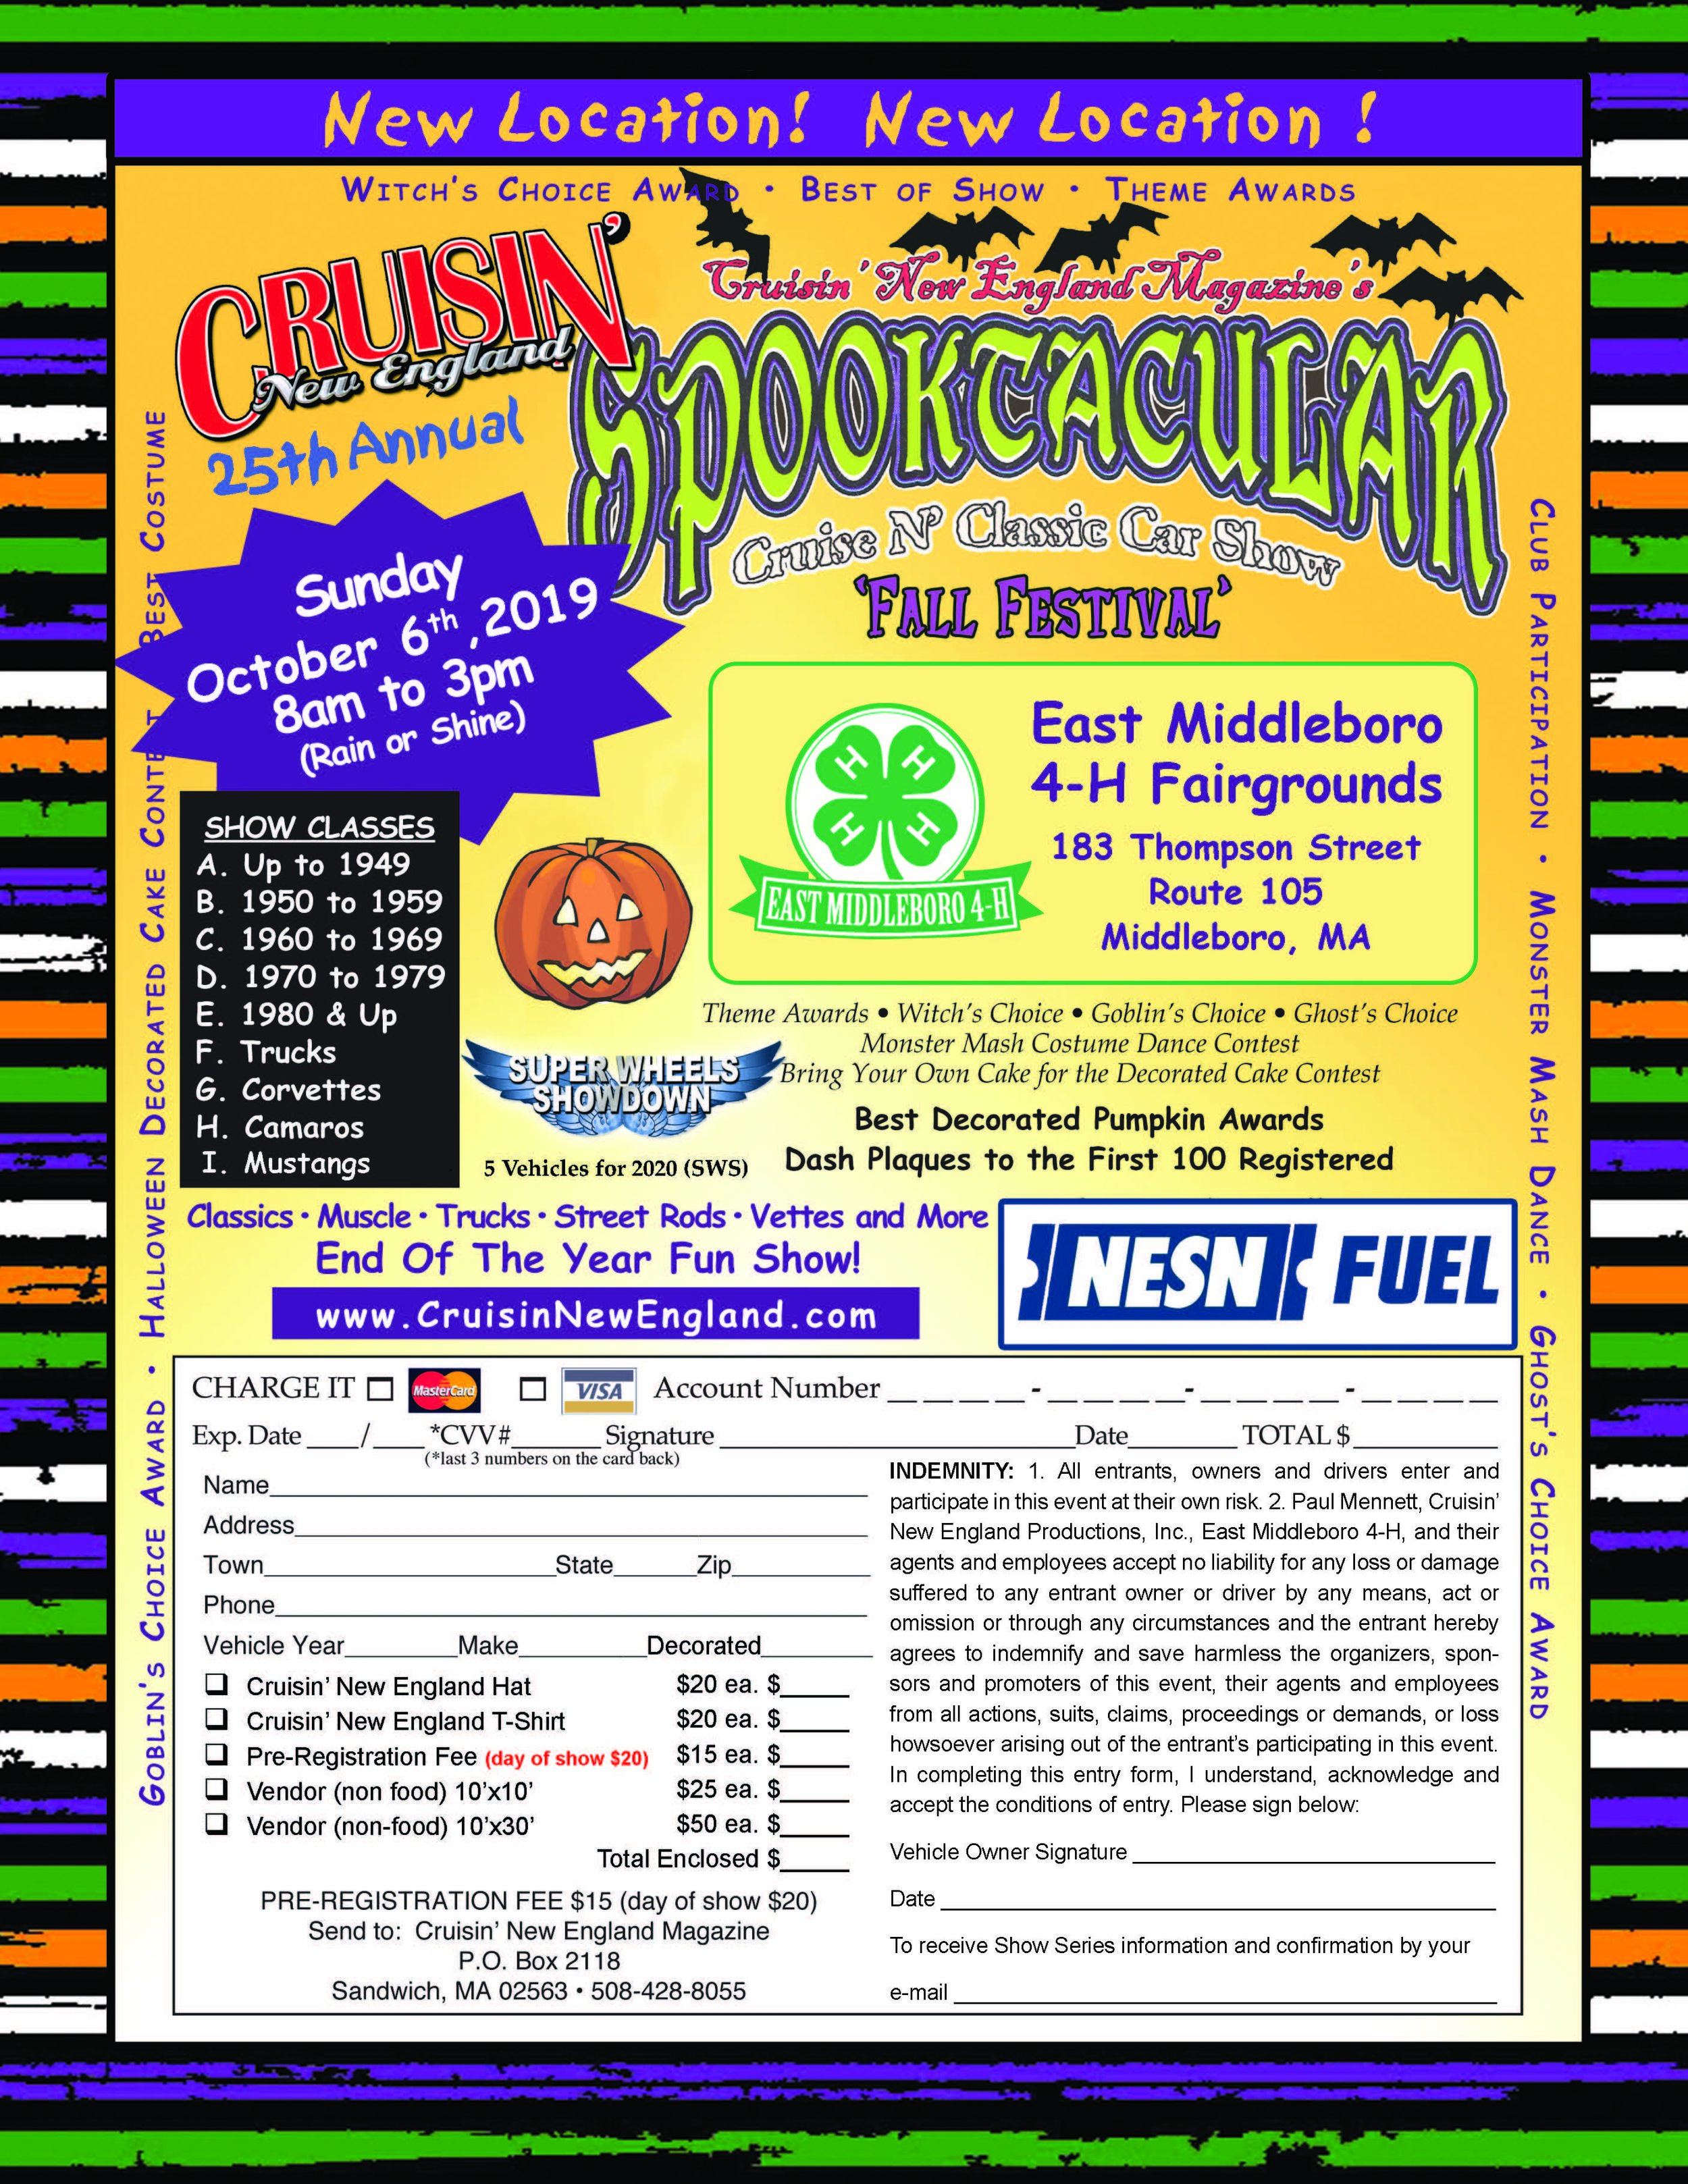 SPOOKTACULAR CRUISE N' CLASSIC at Middleboro 4-H Fairgrounds 10/06/19 -